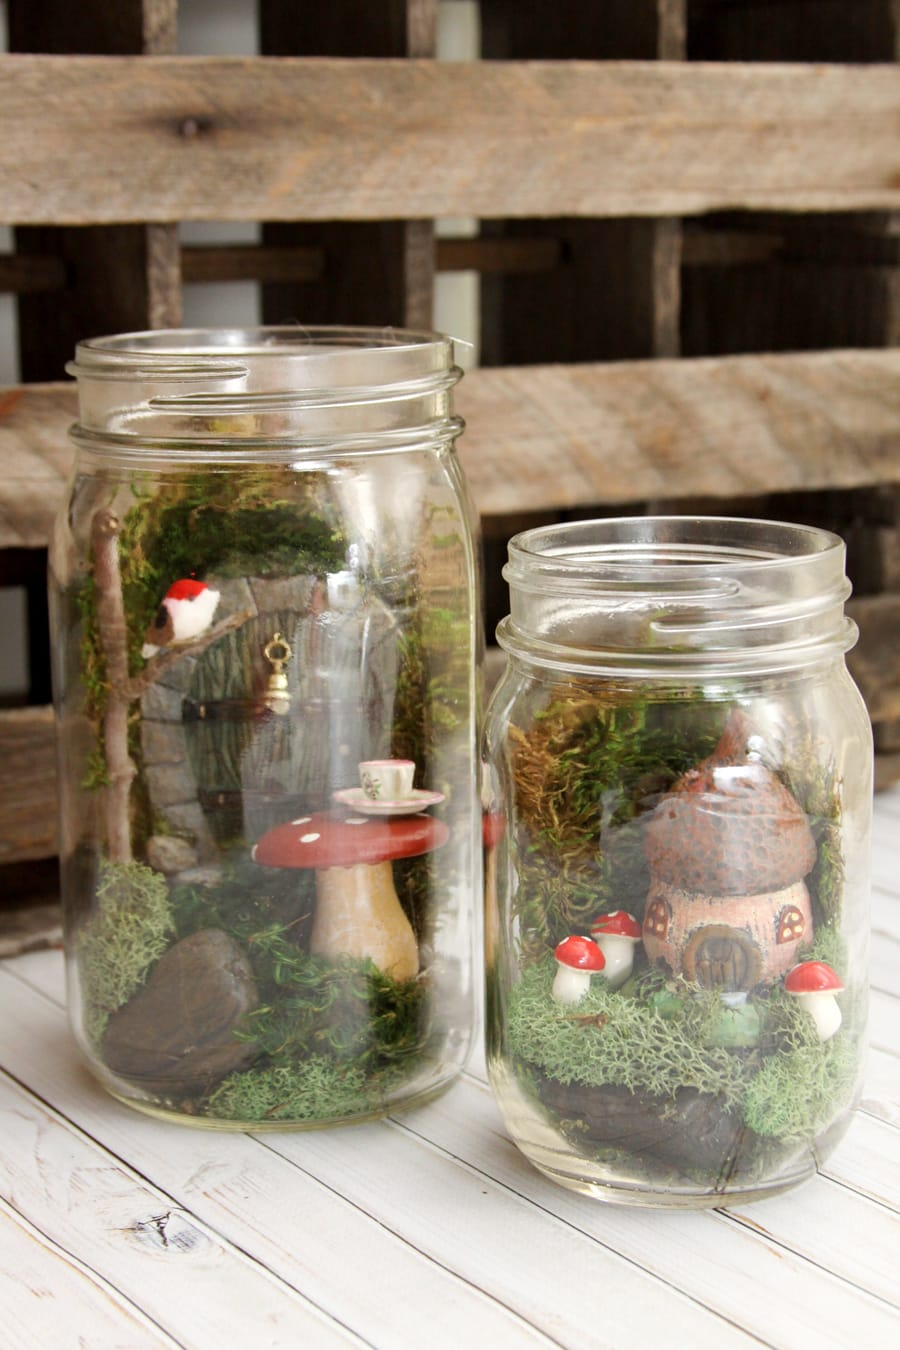 Mason Jar Fairy Gardens - Have you jumped on the fairy garden trend? They only take about 15 minutes to put together and you can have so much fun with different little houses, doors and accessories. They make really fabulous gifts too!